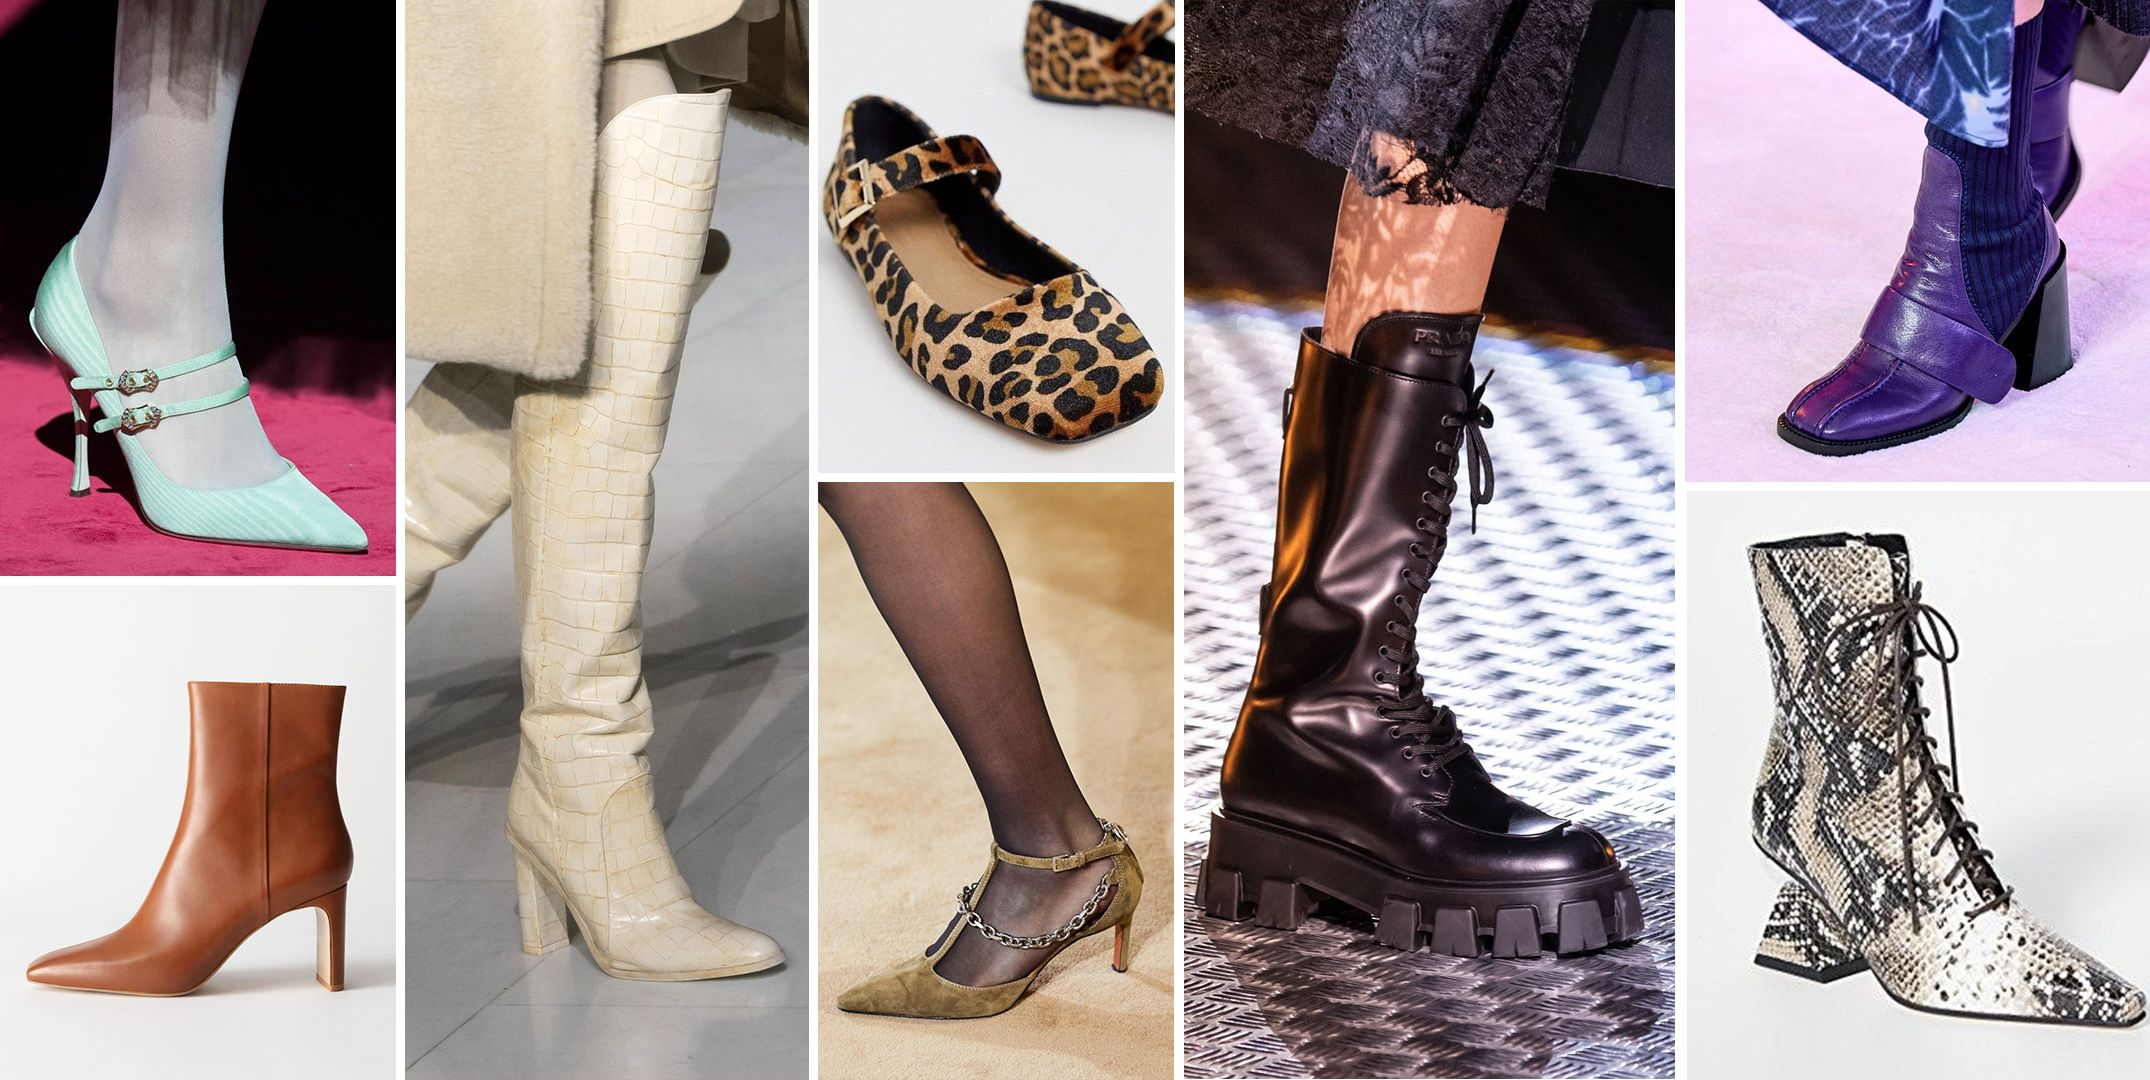 12 Insanely Gorge Winter Boot and Shoe Trends You'll Wanna Bookmark Stat